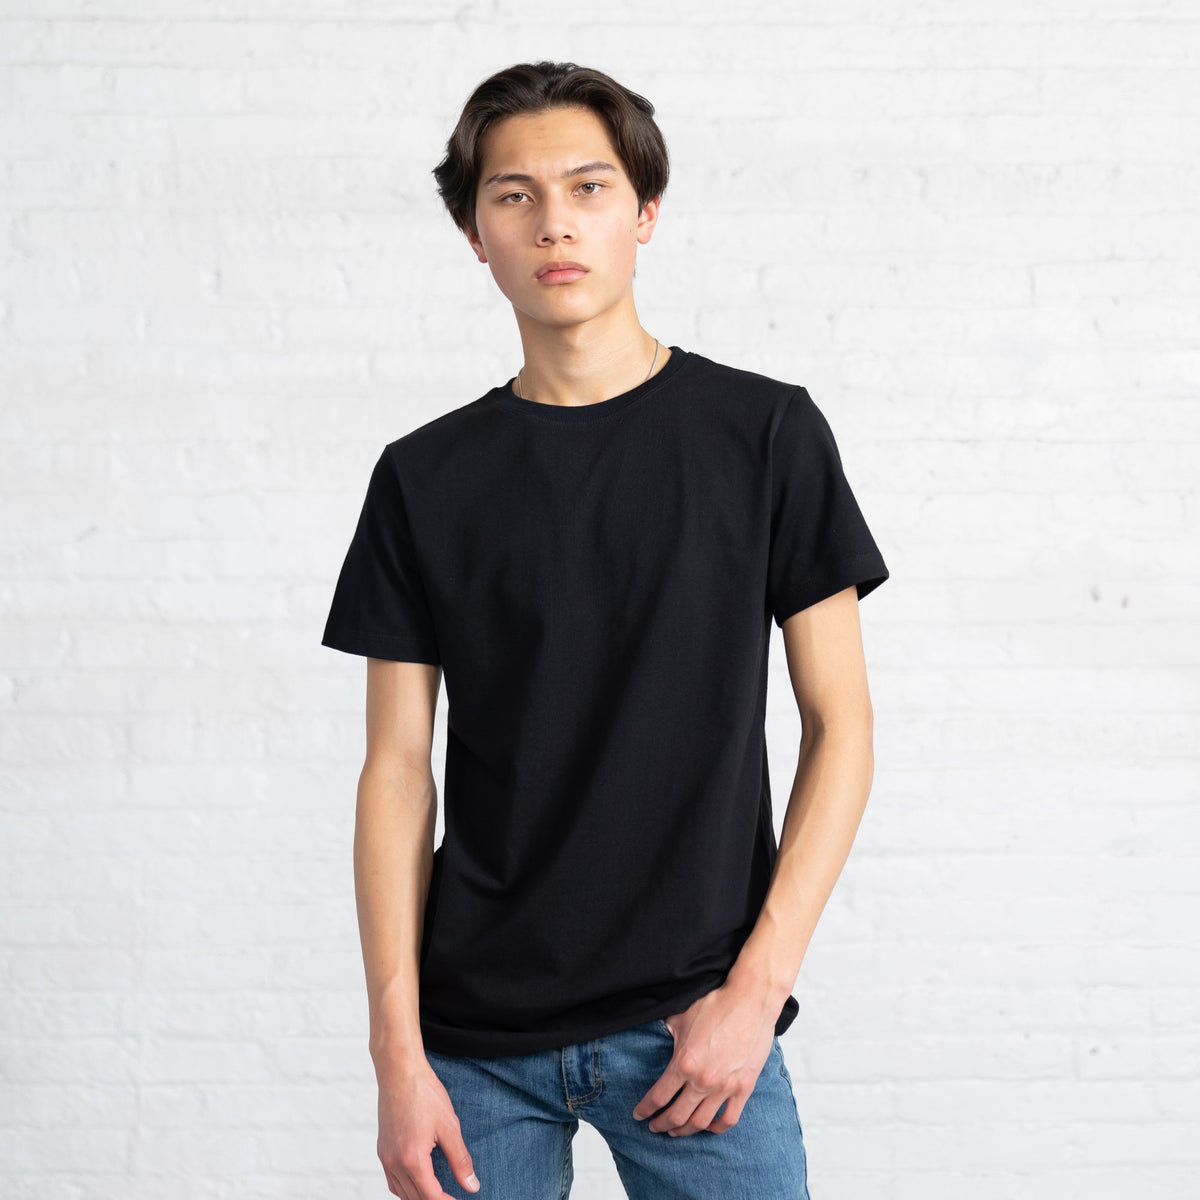 Color:Black Fitted Combed Cotton Men's T-shirts